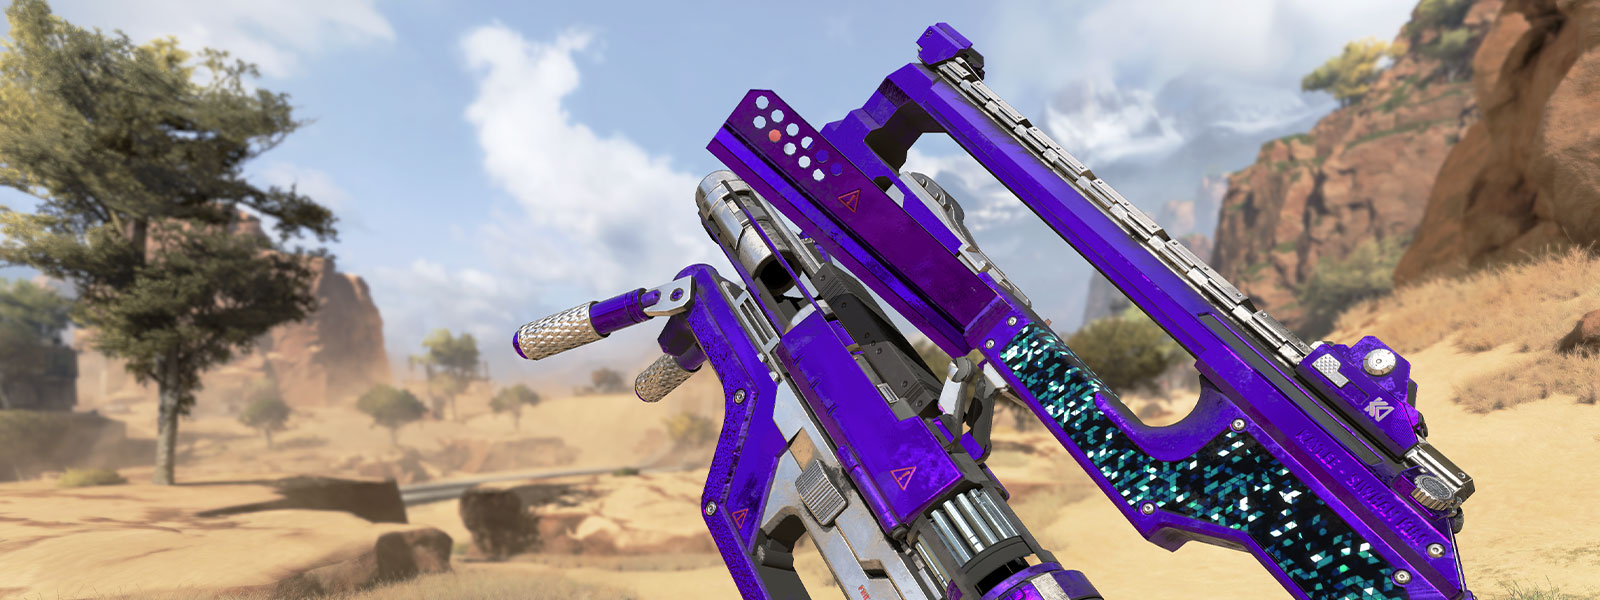 Character holding purple L-STAR weapon in the desert